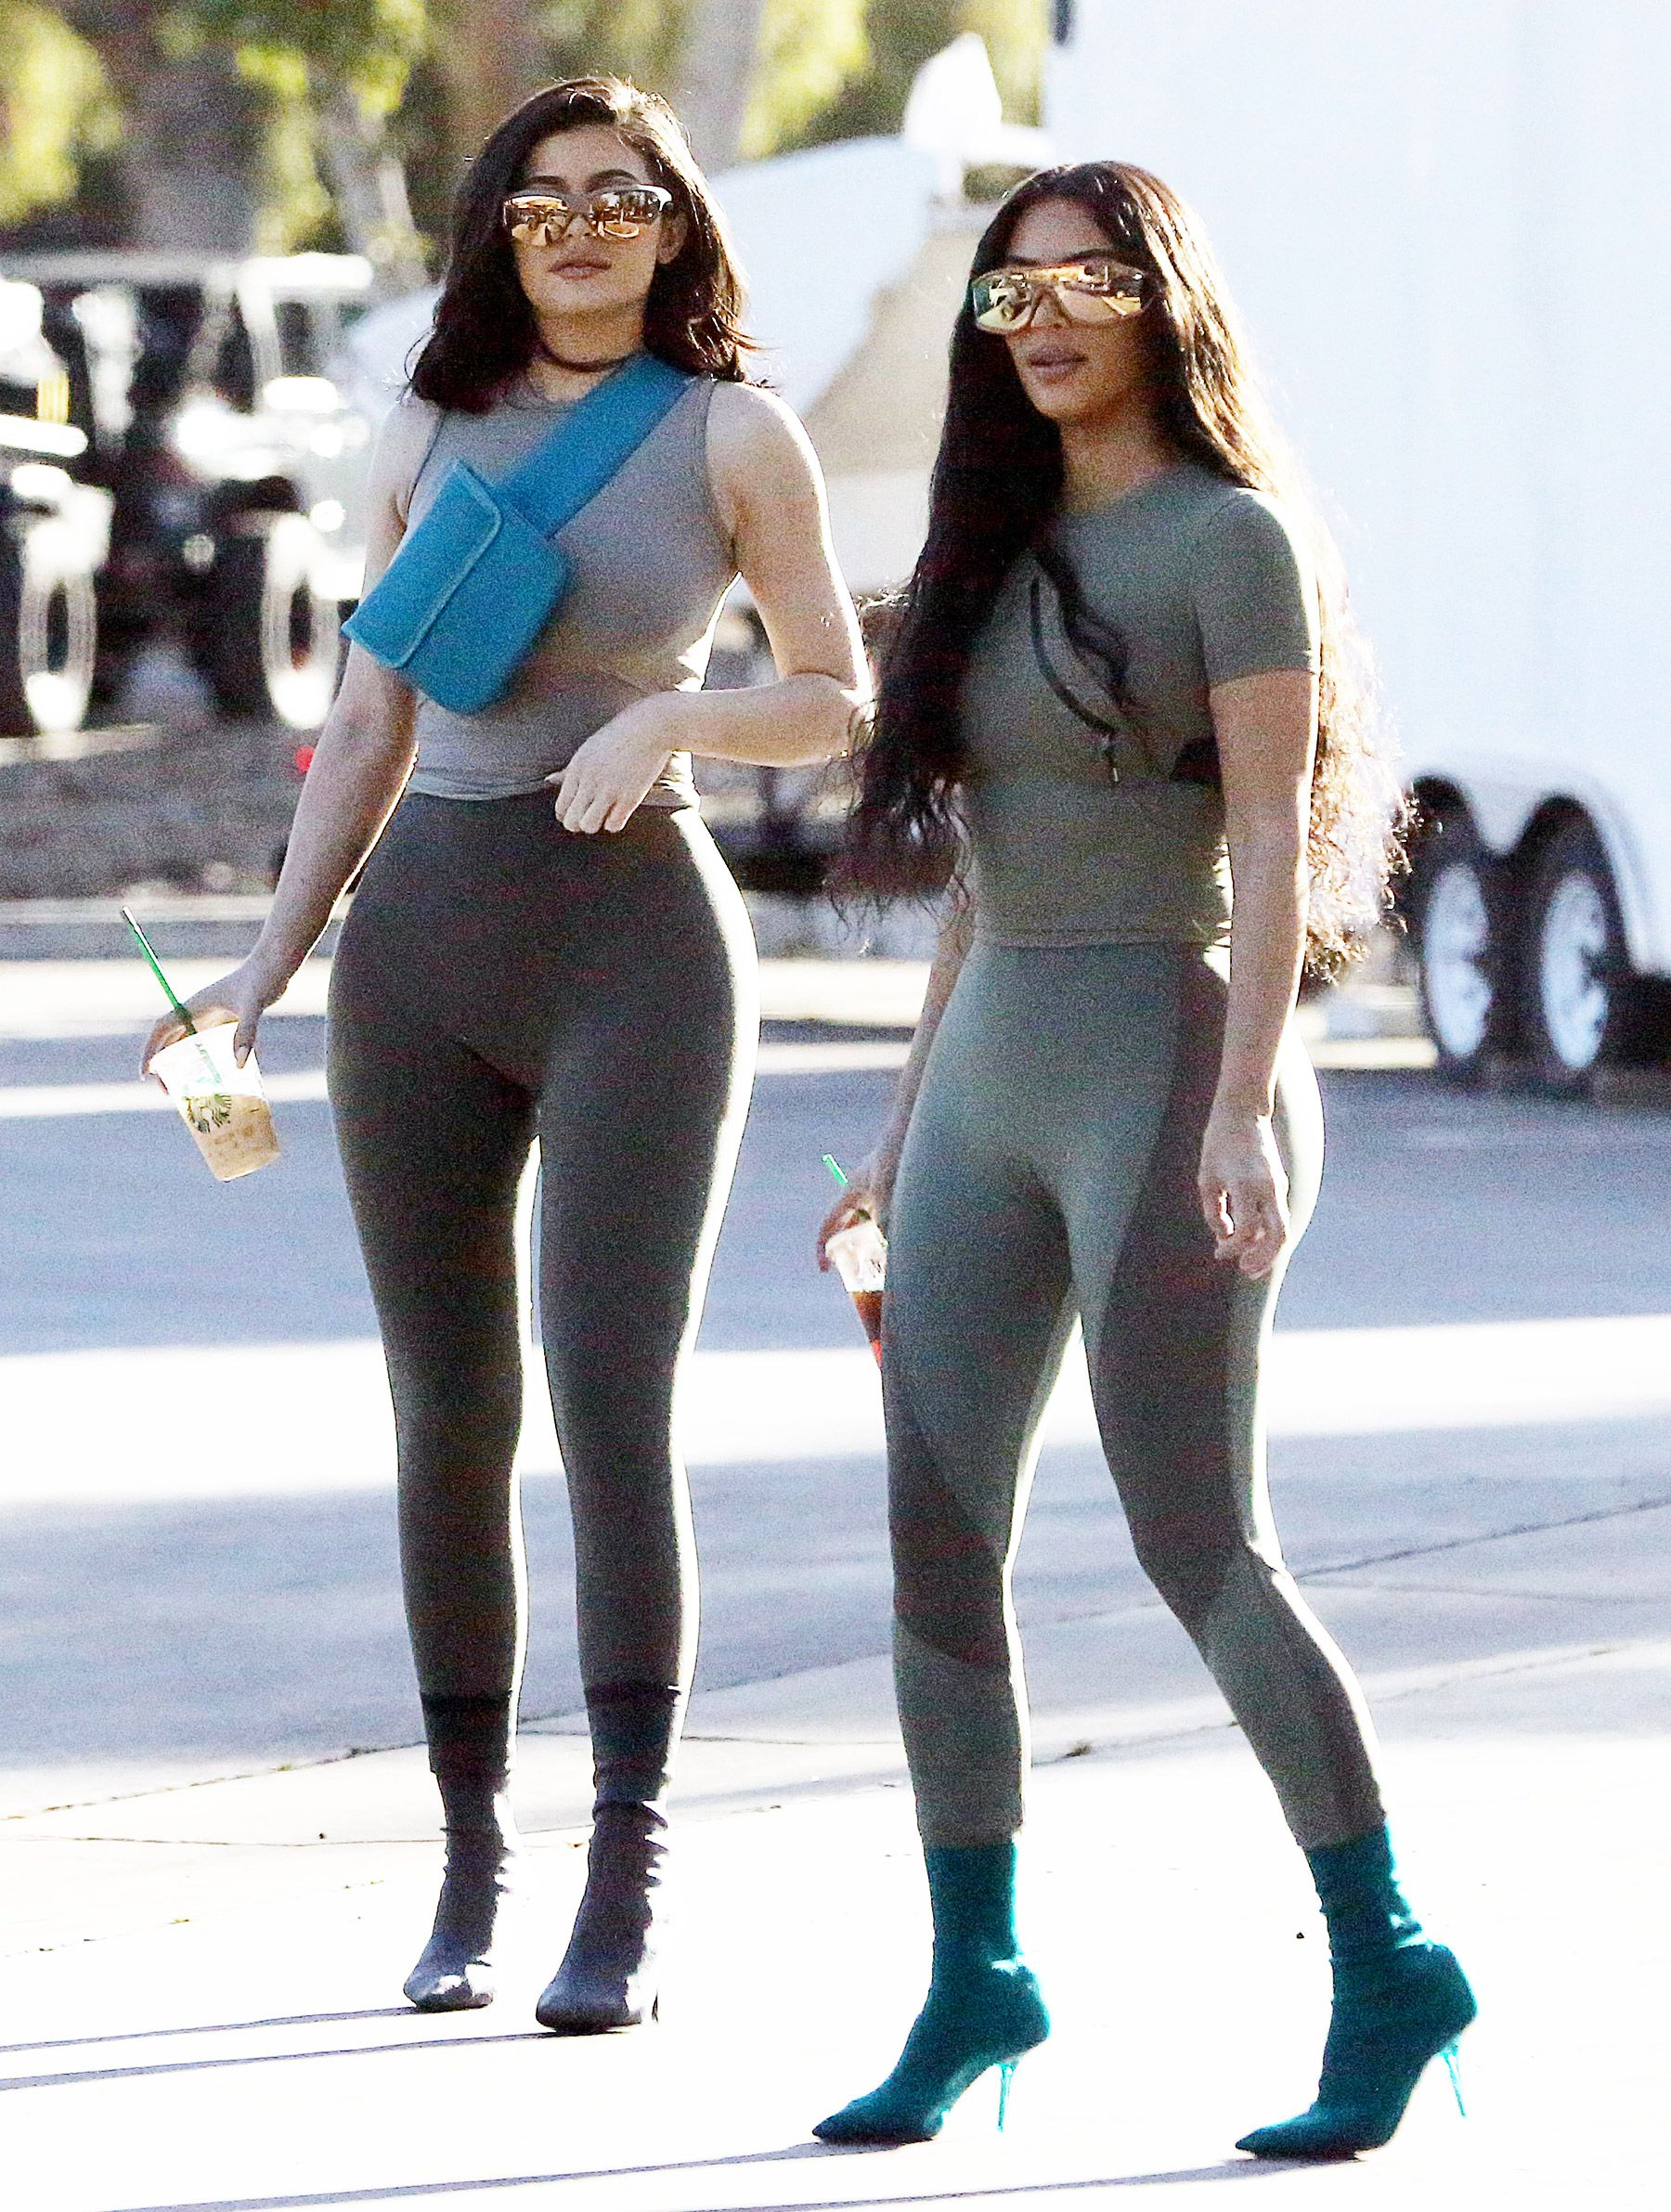 f39012cd64f6b4 Kylie Jenner and Kim Kardashian Look Like Twins in Matching Spandex and  Crop Tops